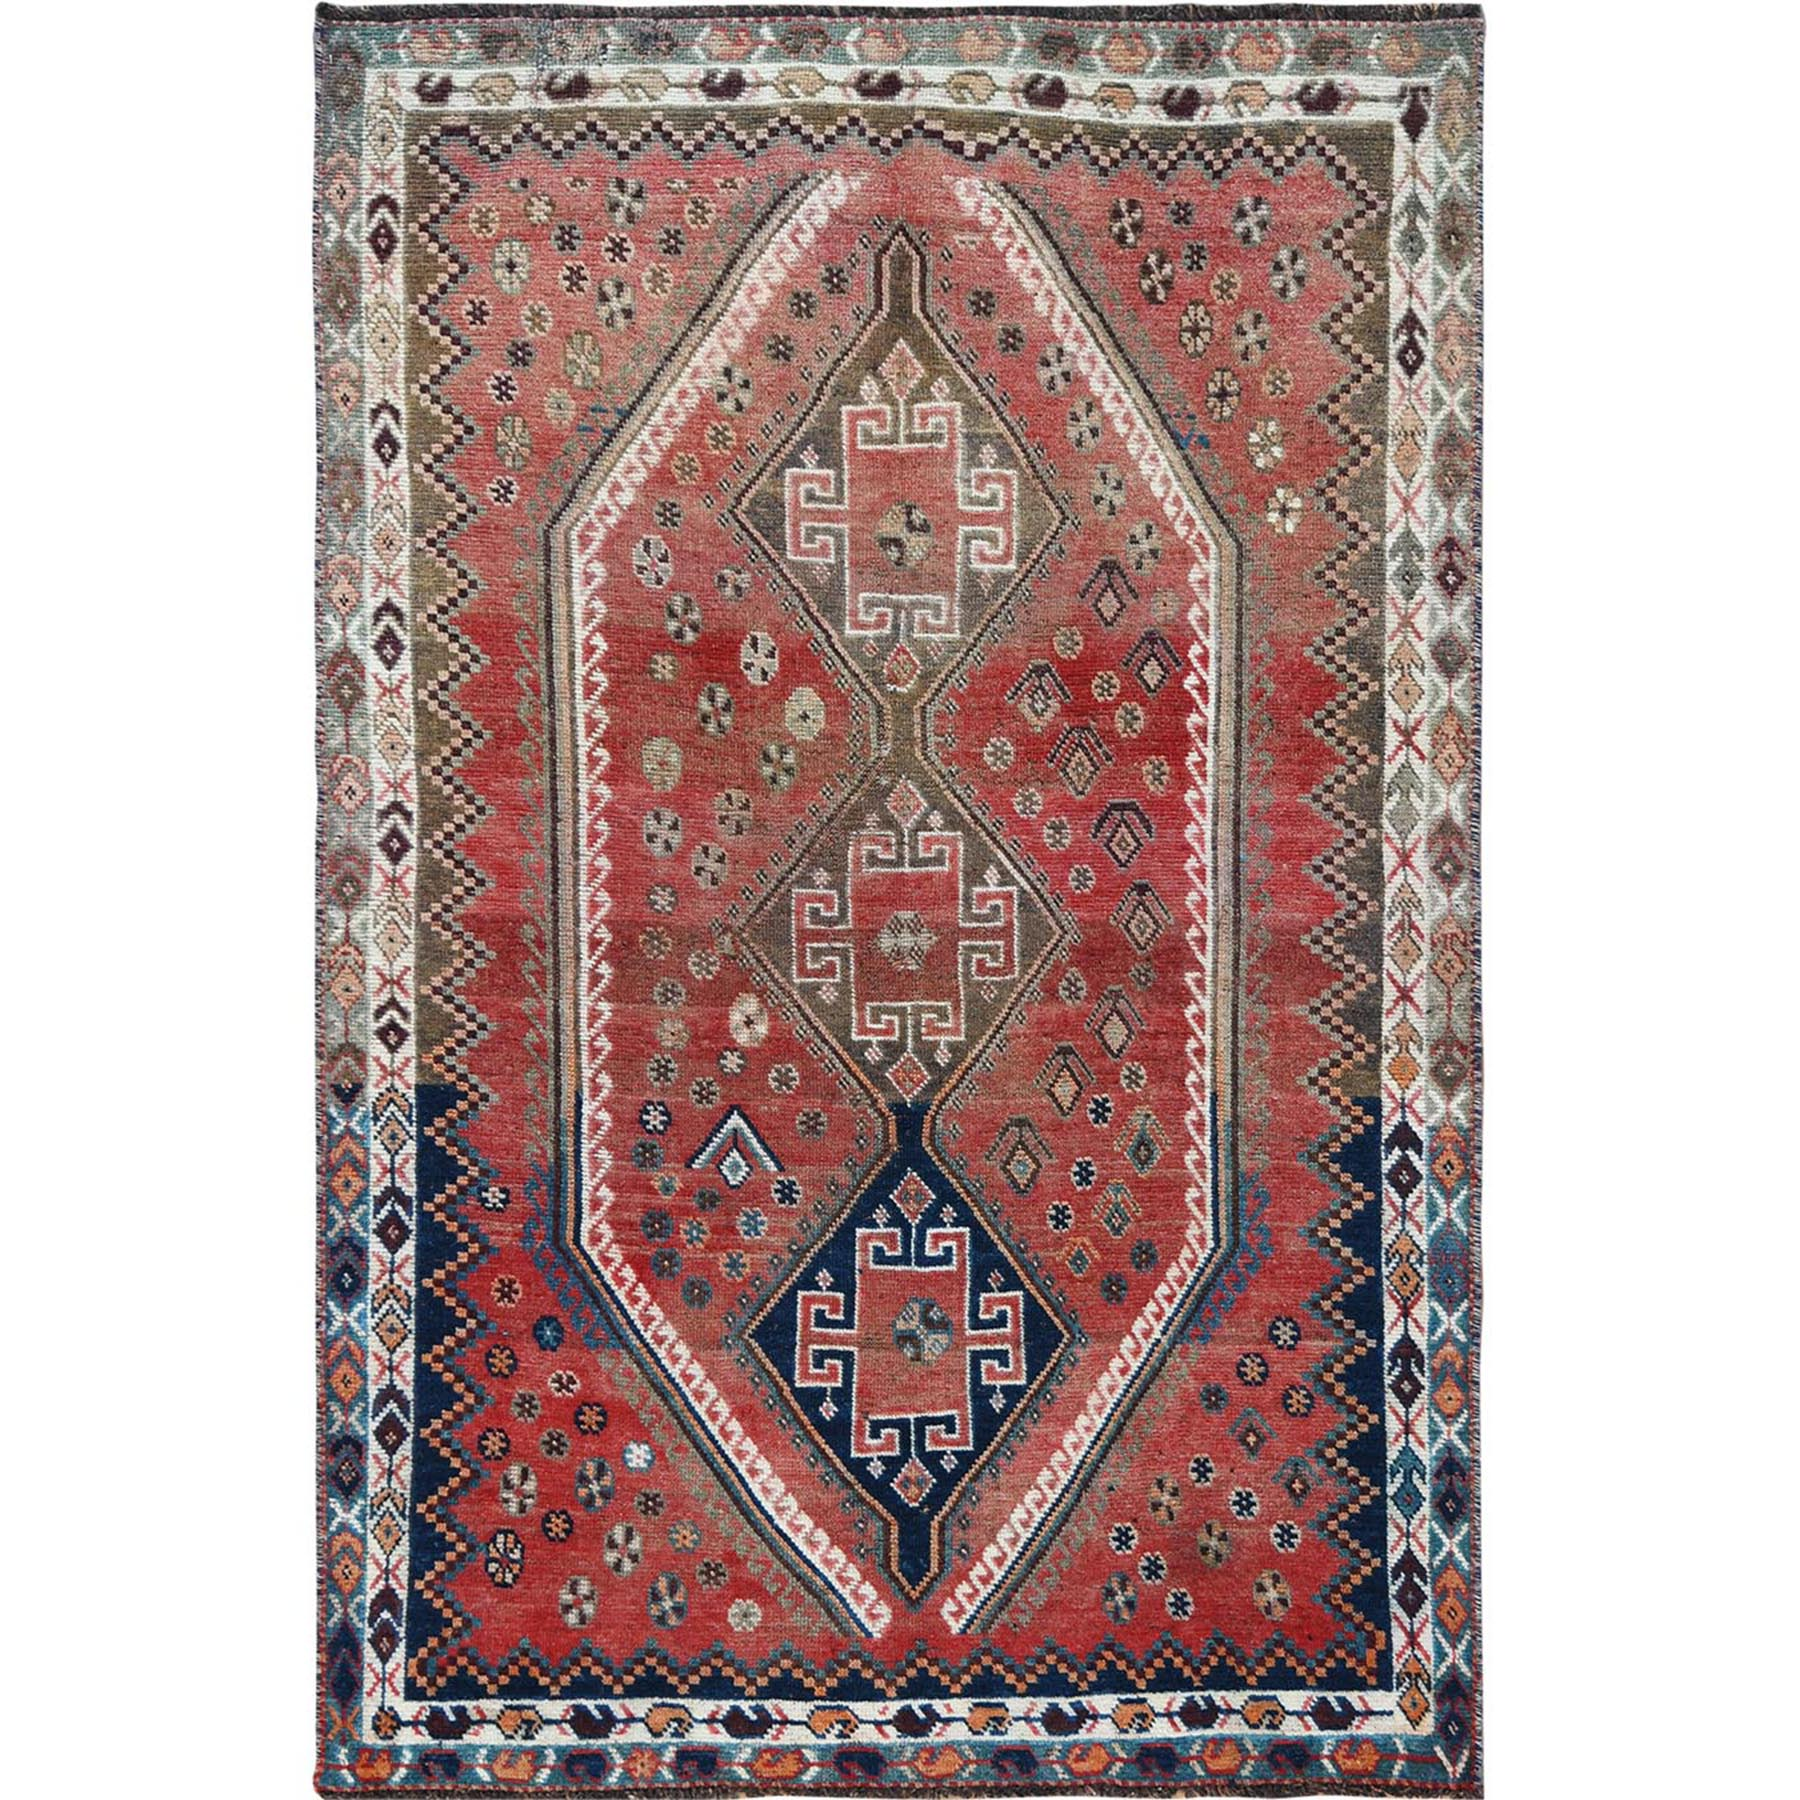 Fetneh Collection And Vintage Overdyed Collection Hand Knotted Red Rug No: 1115658